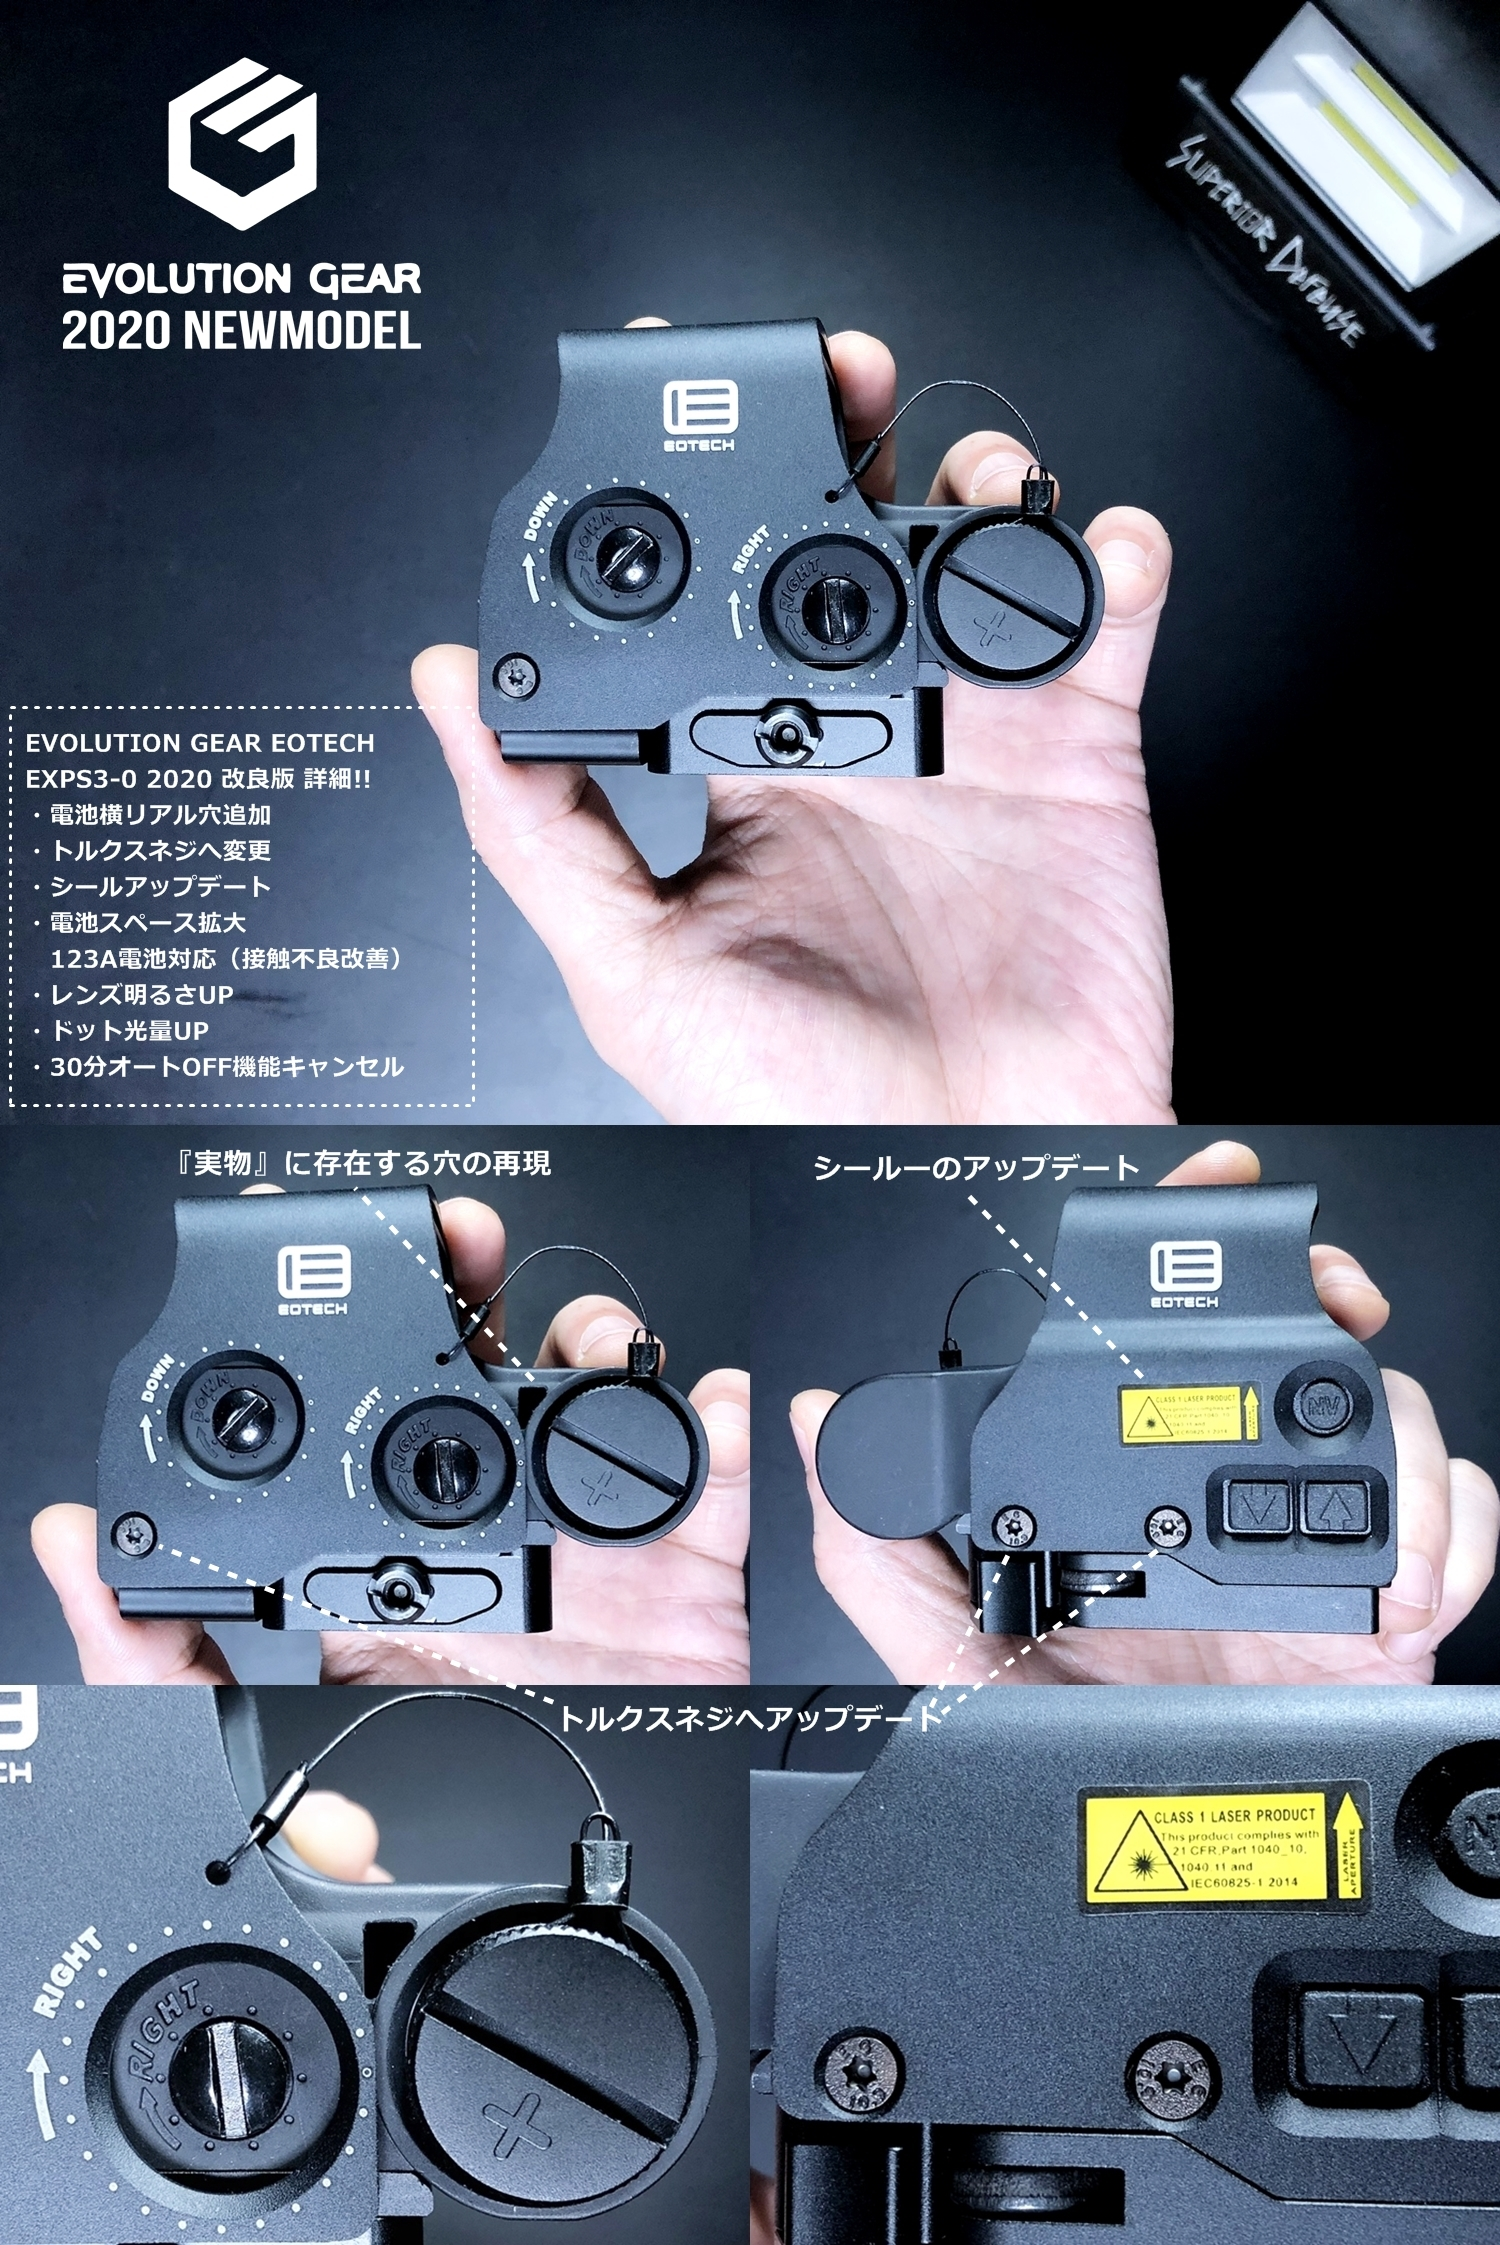 3 EVOLUTION GEAR 2020 改良版 EOTech EXPS3-0 NEW!! 最新リアルバージョンの改良点を徹底検証だ!! 新エボギア & 旧エボギア & 実物 イオテック ホロサイト!! 開封 比較 検証 取付 レビュー!!